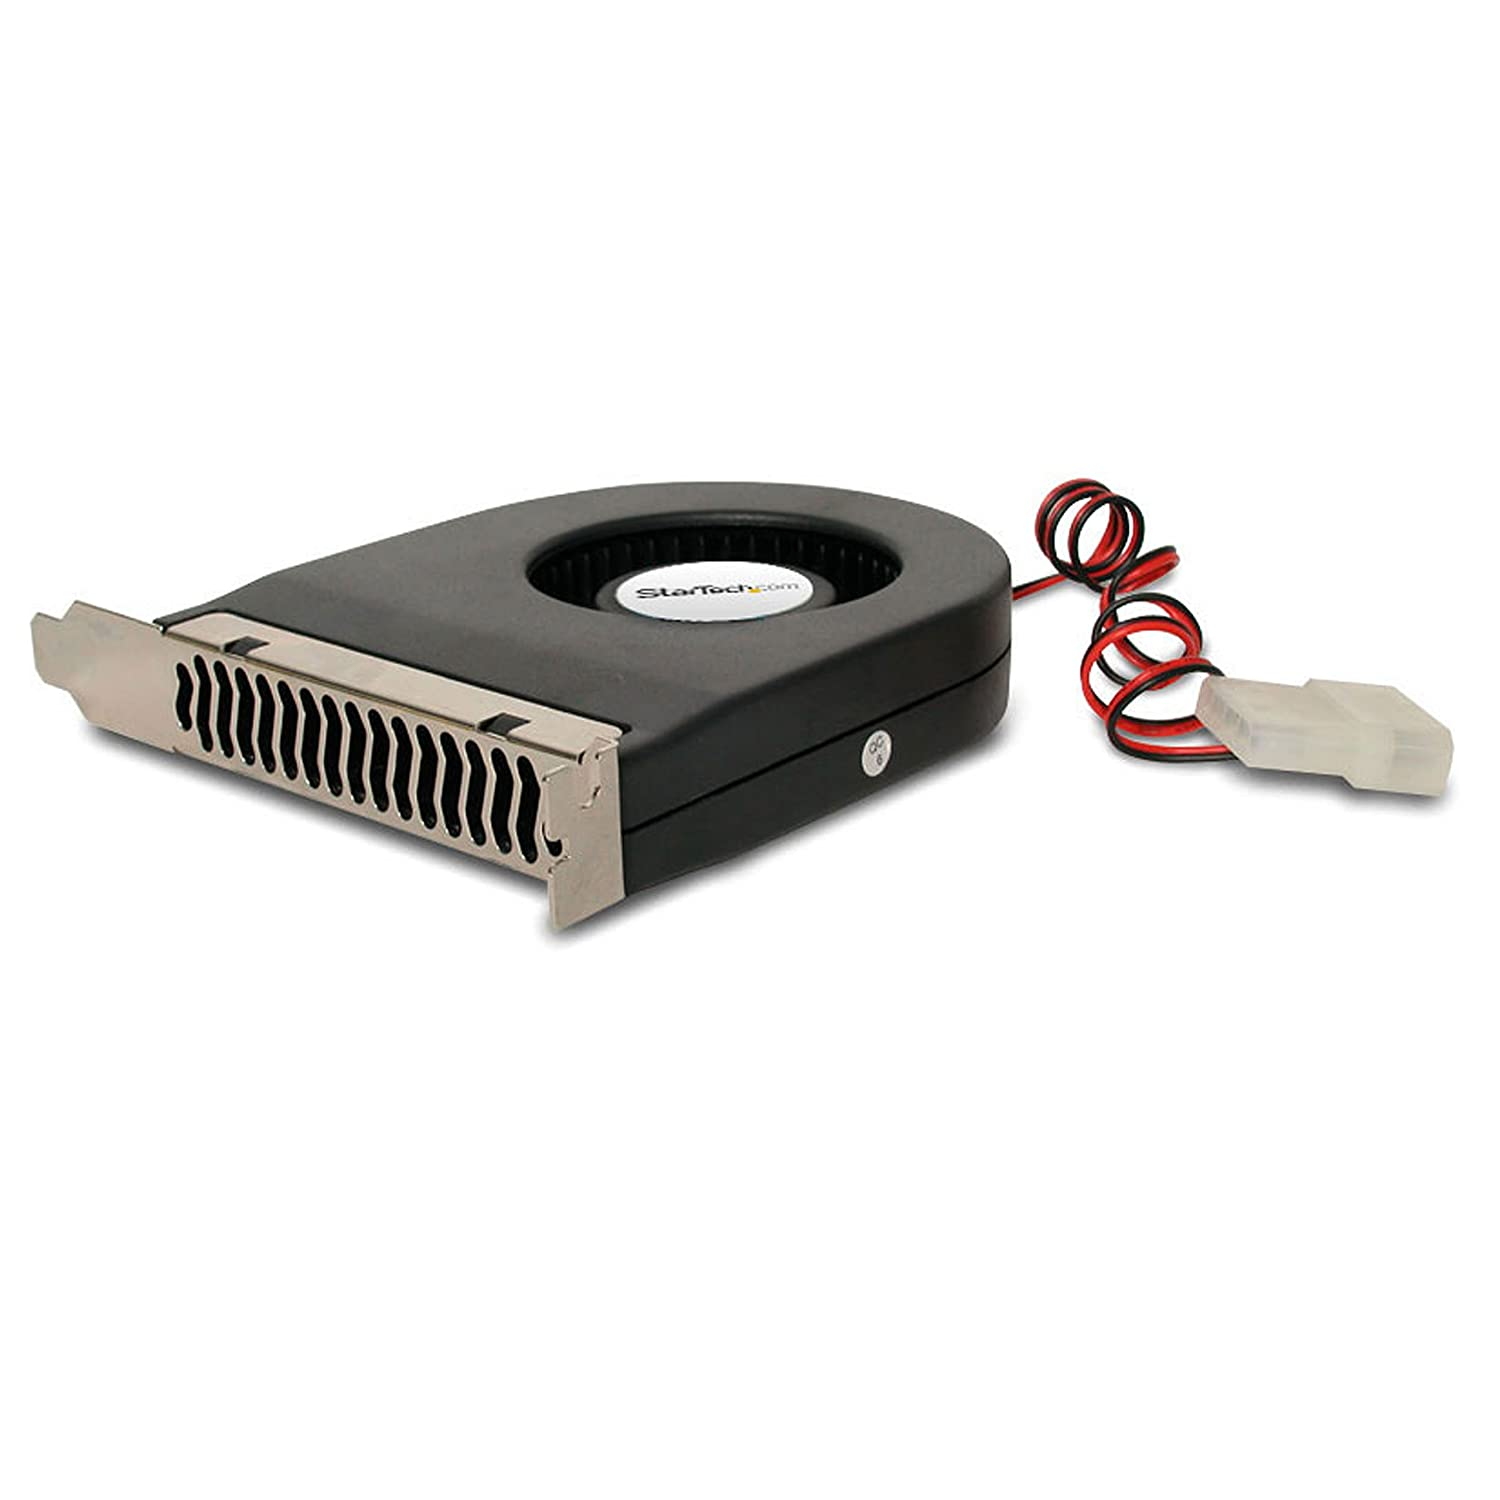 StarTech.com Expansion Slot Rear Exhaust Cooling Fan with LP4 Connector (FANCASE)